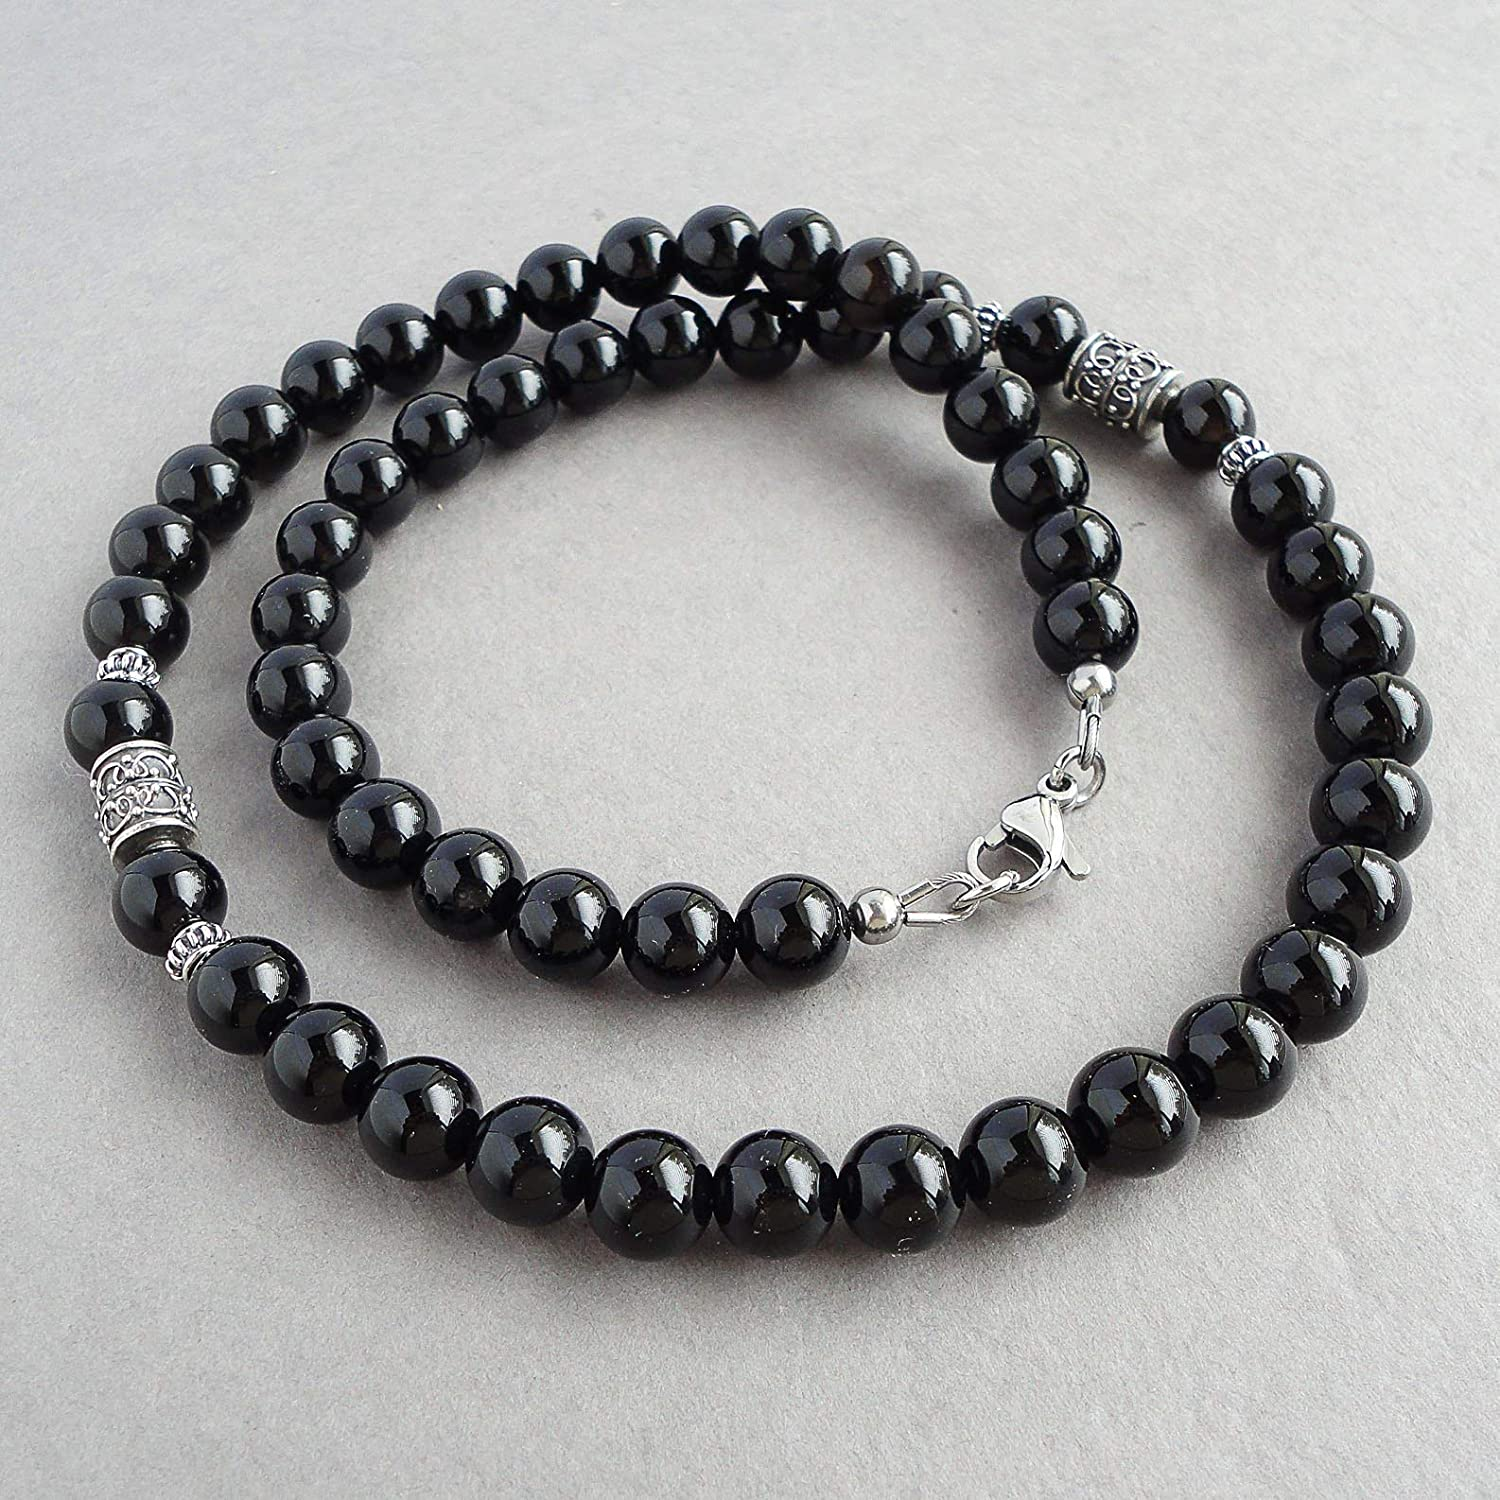 c4c6f526031932 Amazon.com: 8mm Black Onyx Mens Necklace - Sterling Silver Accents - Beaded  Gemstone Jewelry - Handmade: Handmade